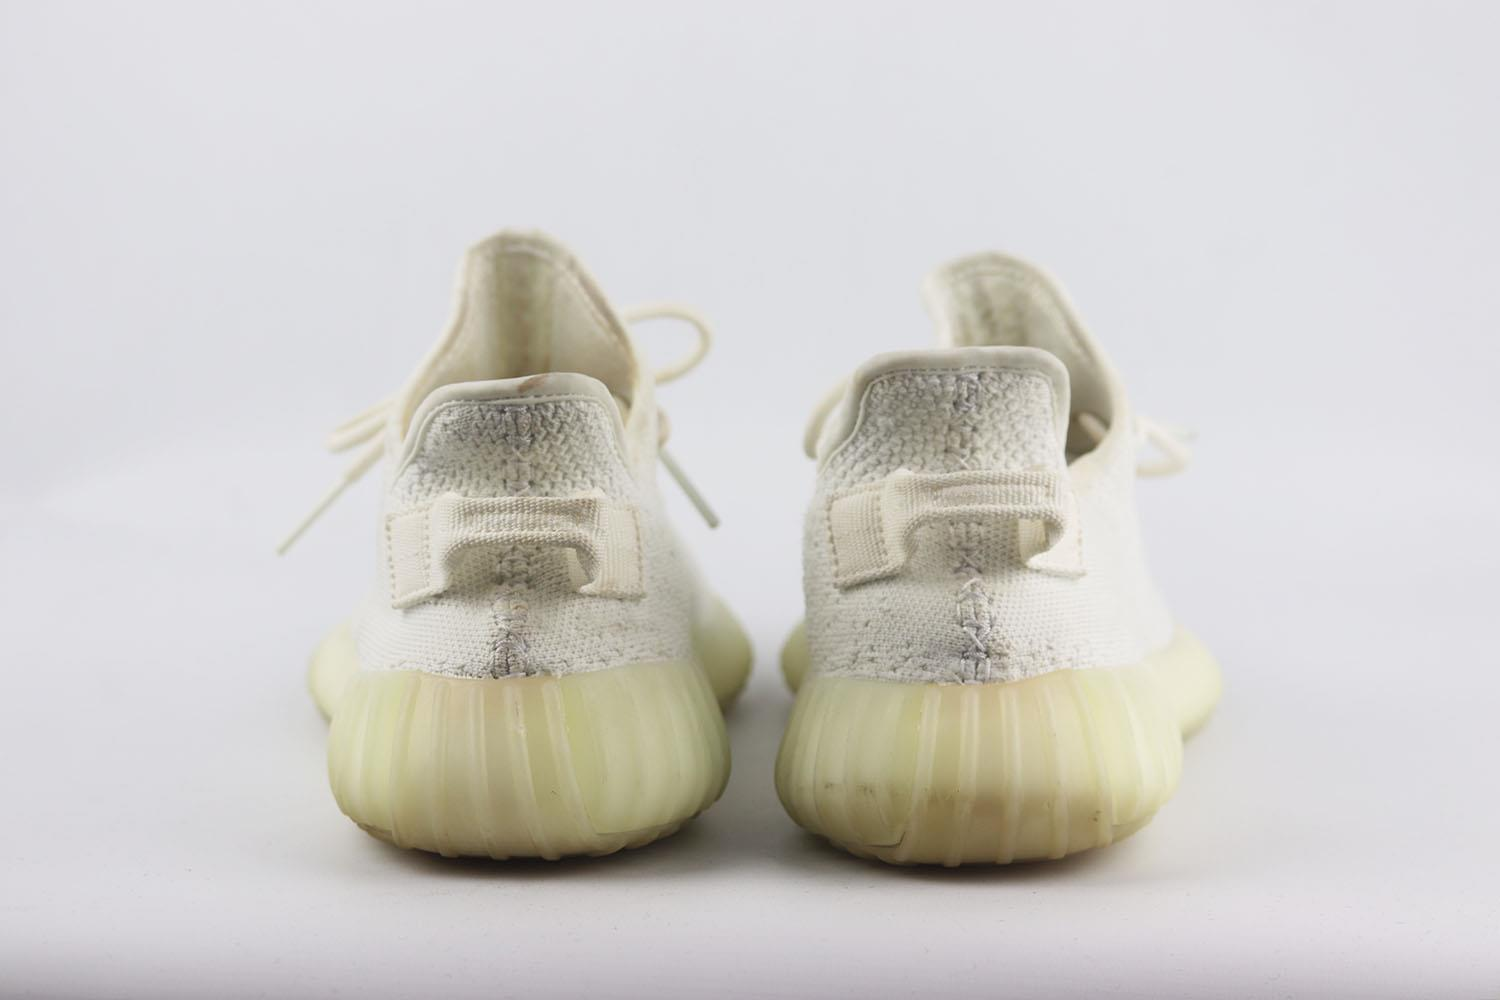 ADIDAS YEEZY BOOST 350 V2 PRIMEKNIT SNEAKERS EU 40 UK 6.5 US 7